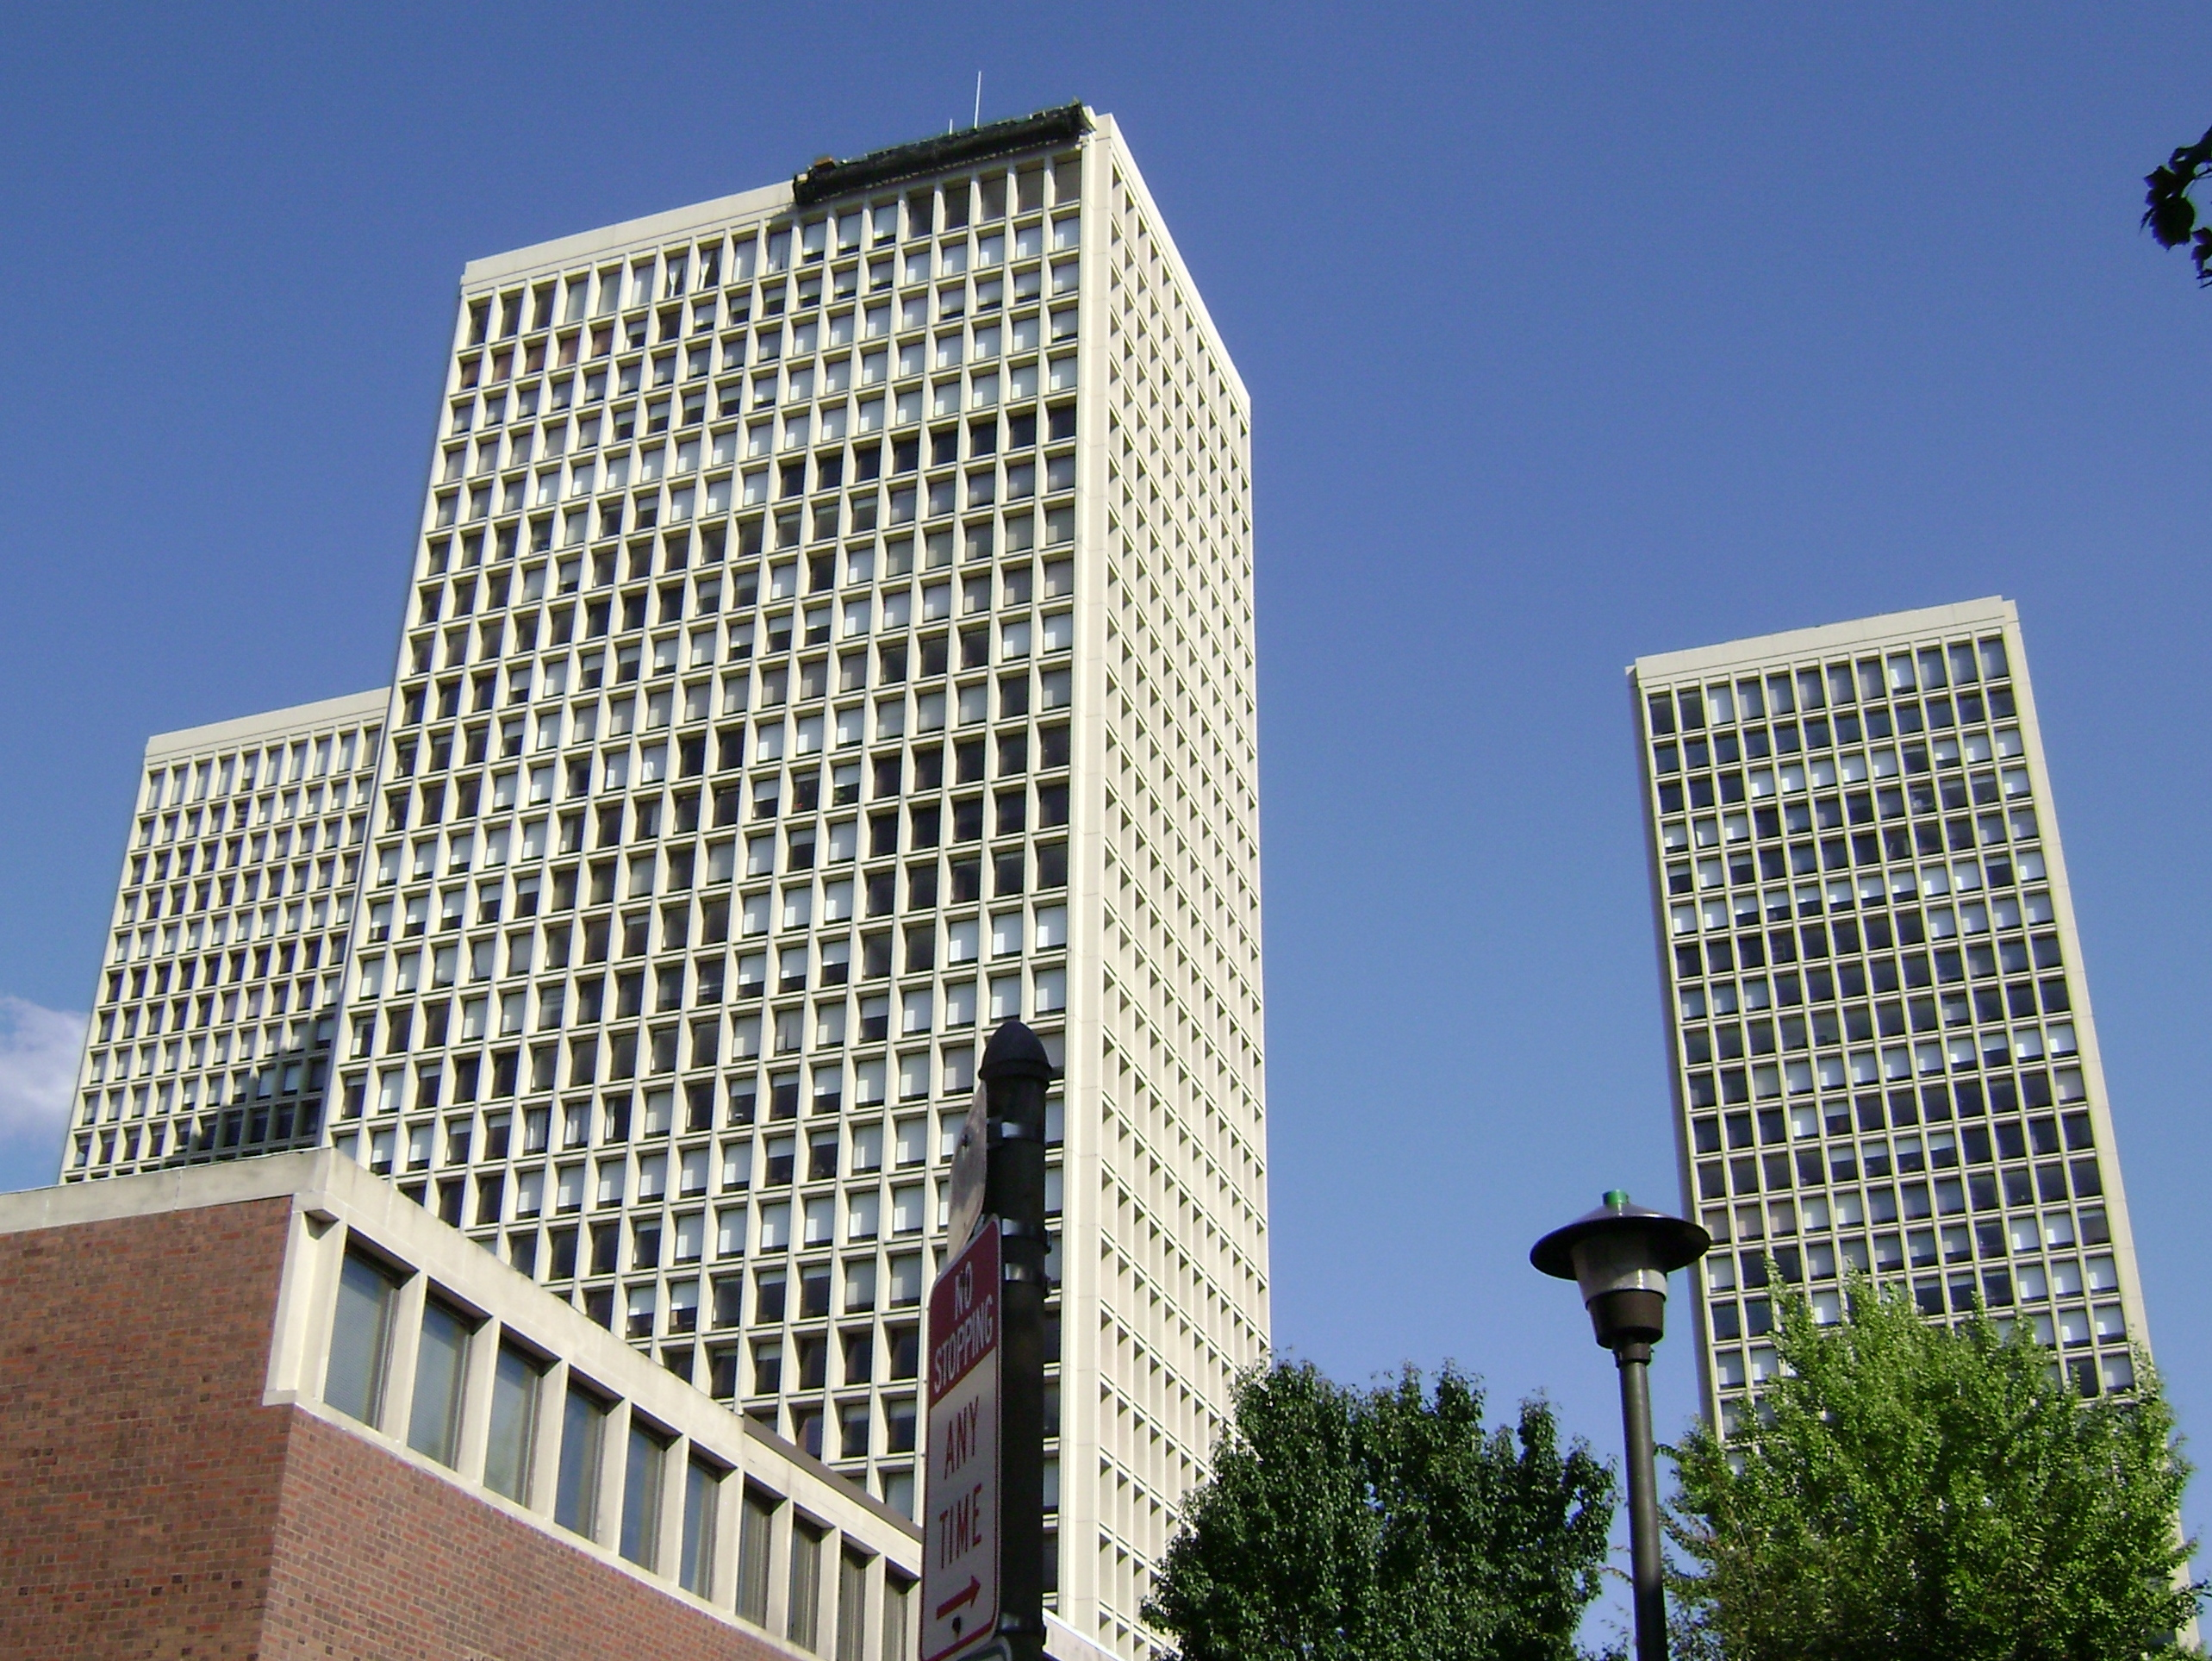 """Society Hill Towers"" designed by architect I. M. Pei, completed in 1964.  Photo by Wiki Takes Philadelphia. Licensed under CC BY-SA 3.0 via Wikimedia Commons."